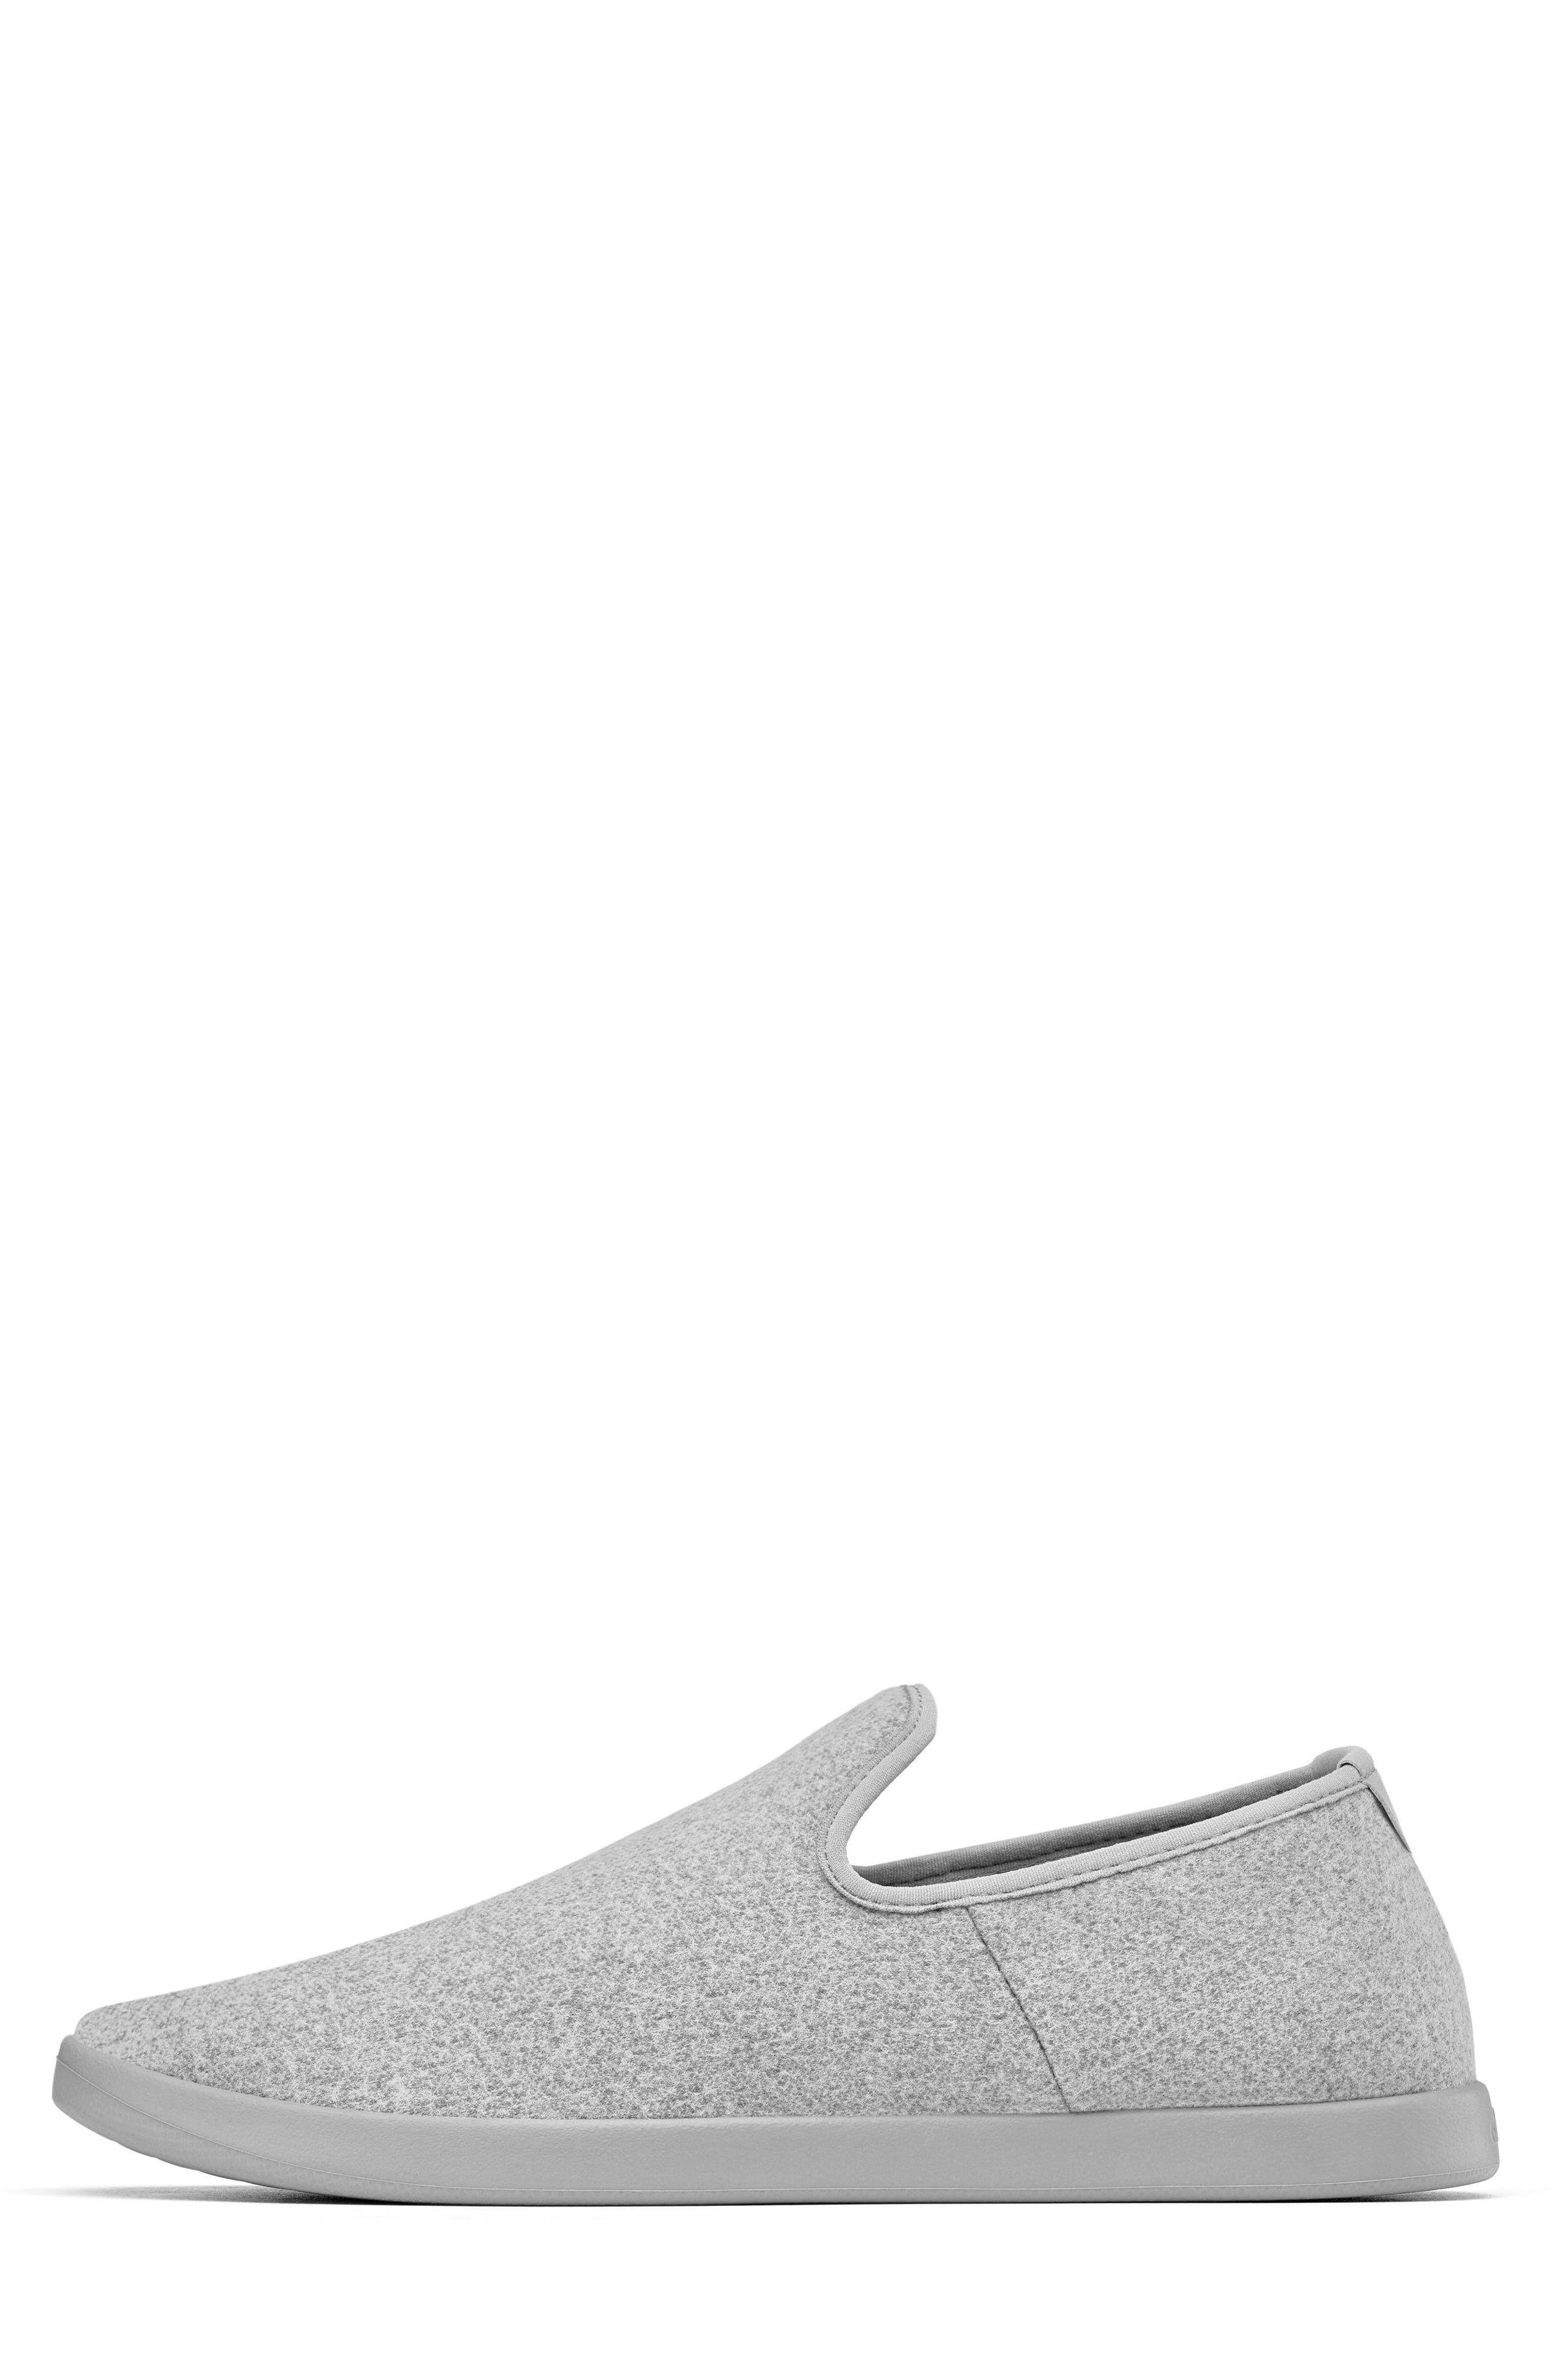 Wool Lounger,                             Alternate thumbnail 2, color,                             Sf Grey